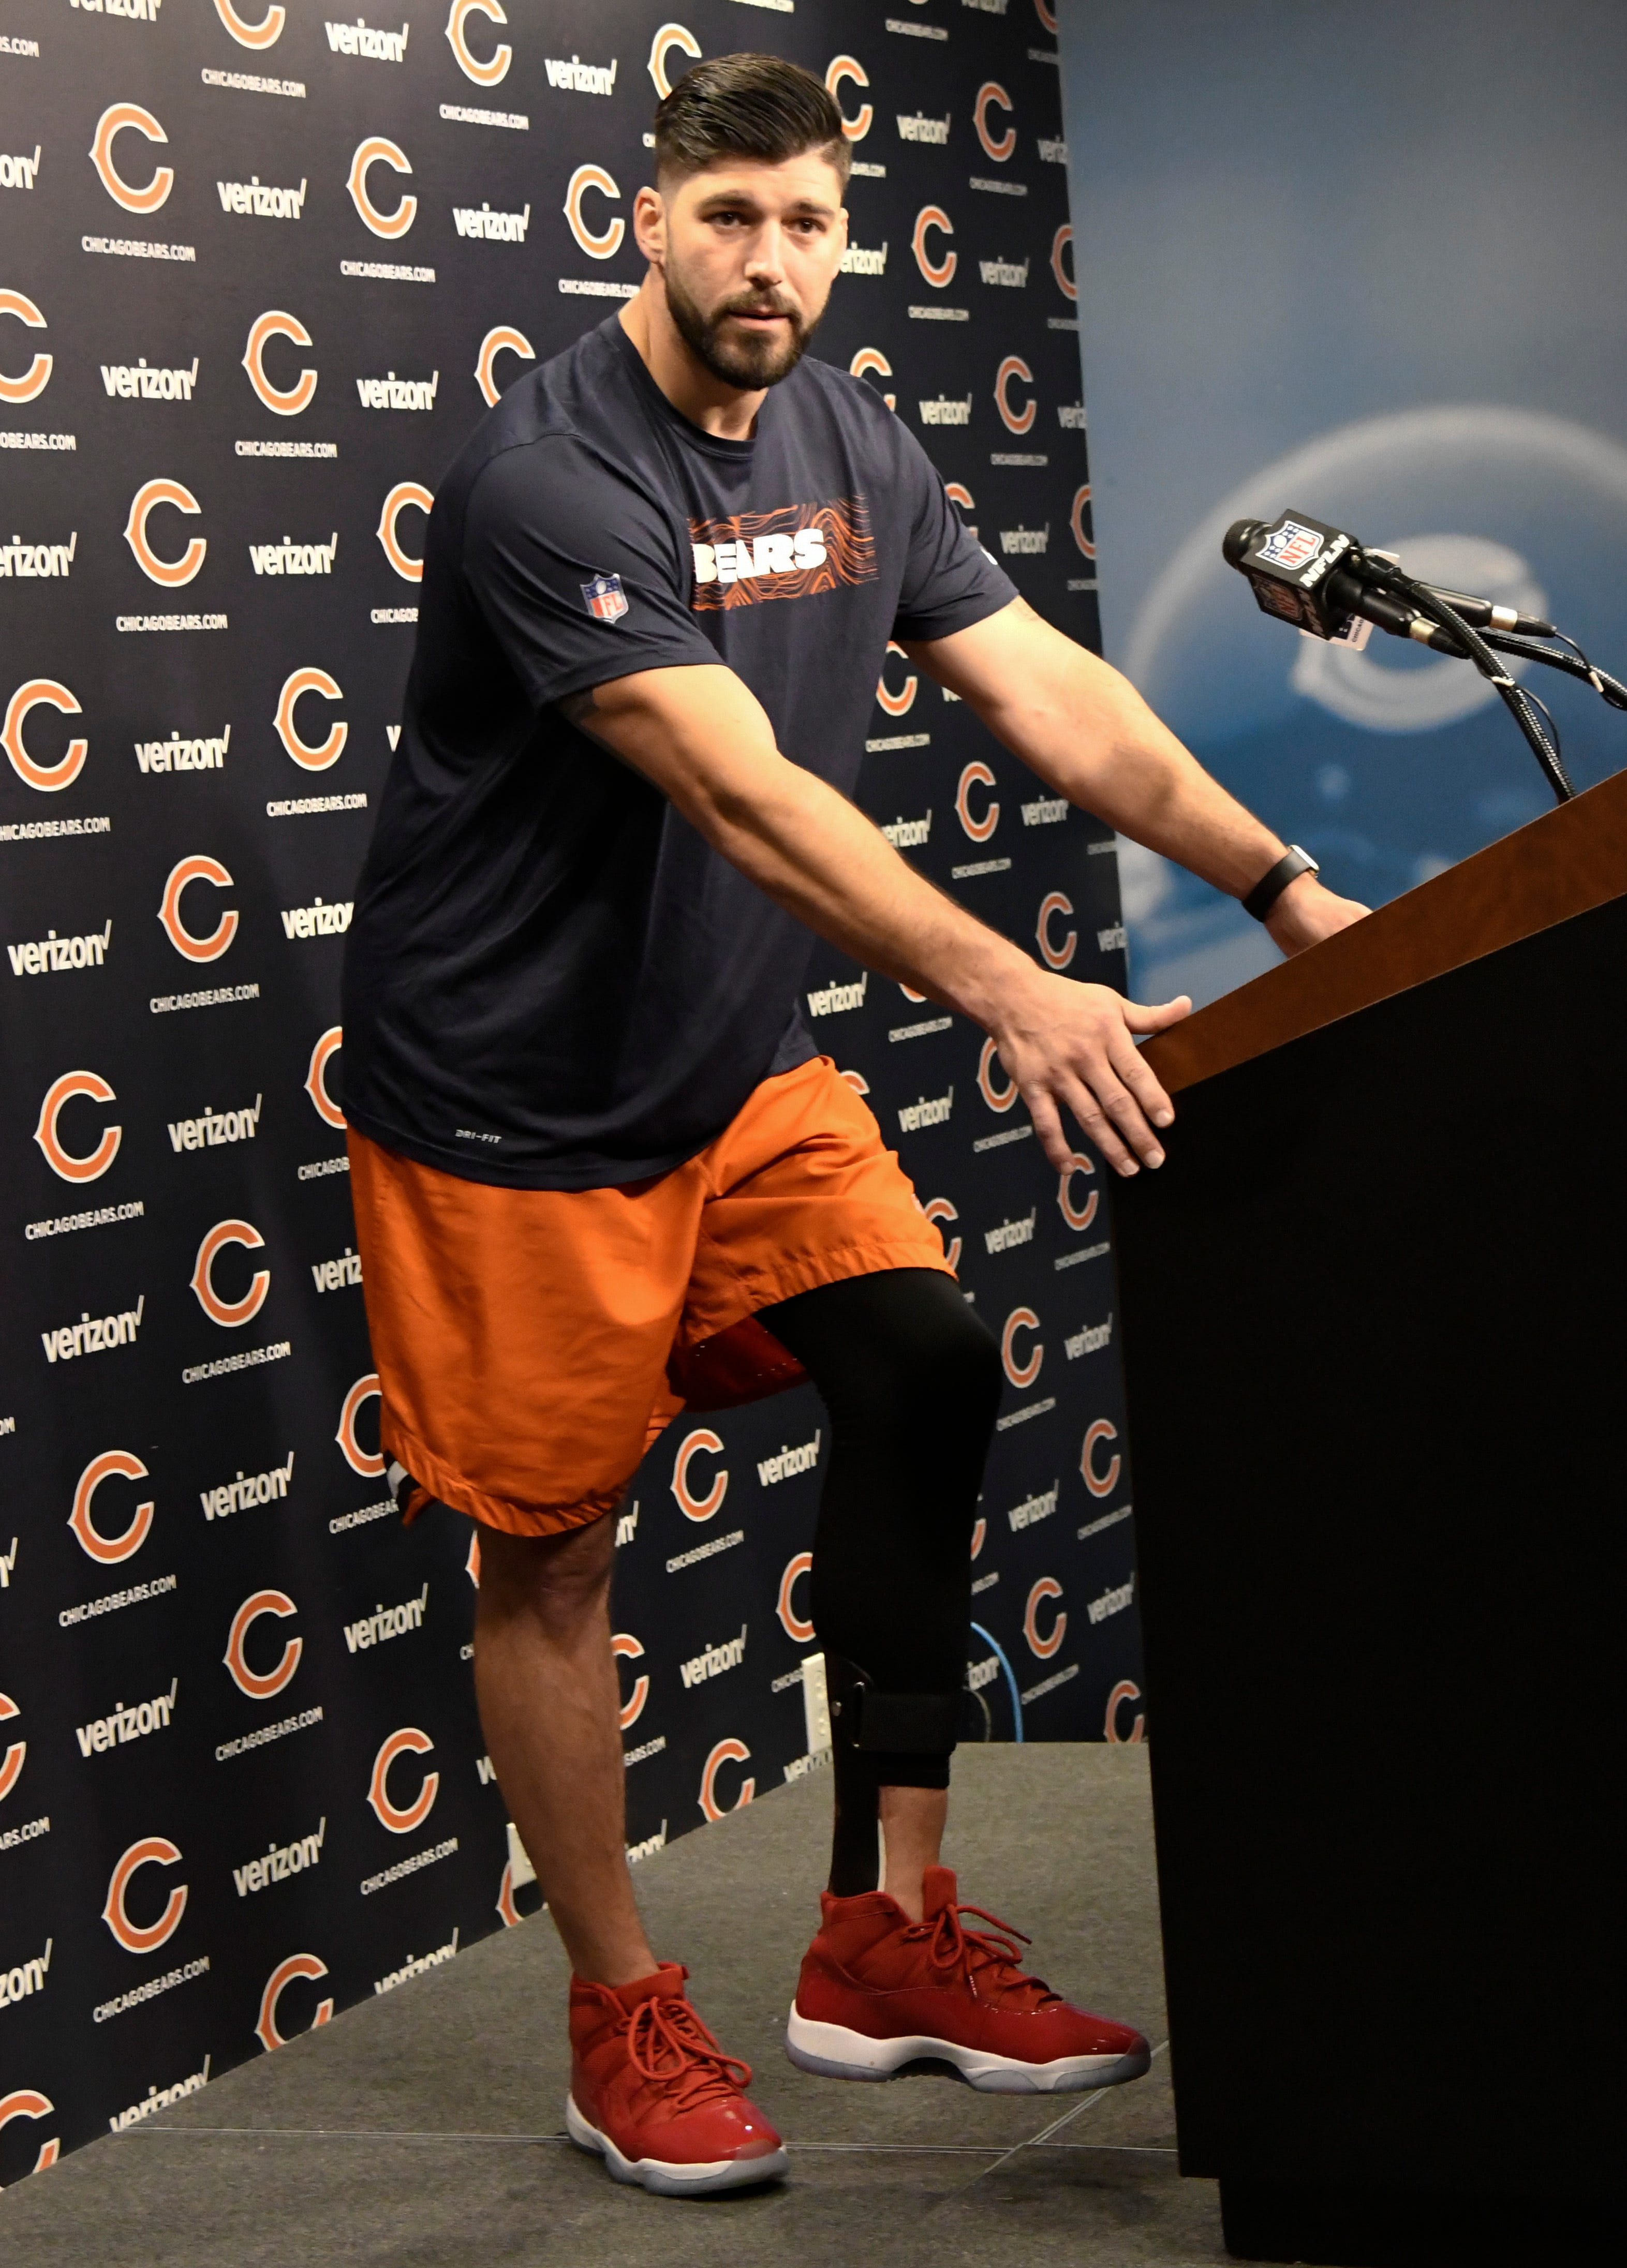 Bears' Miller won't set limits on recovery from leg injury